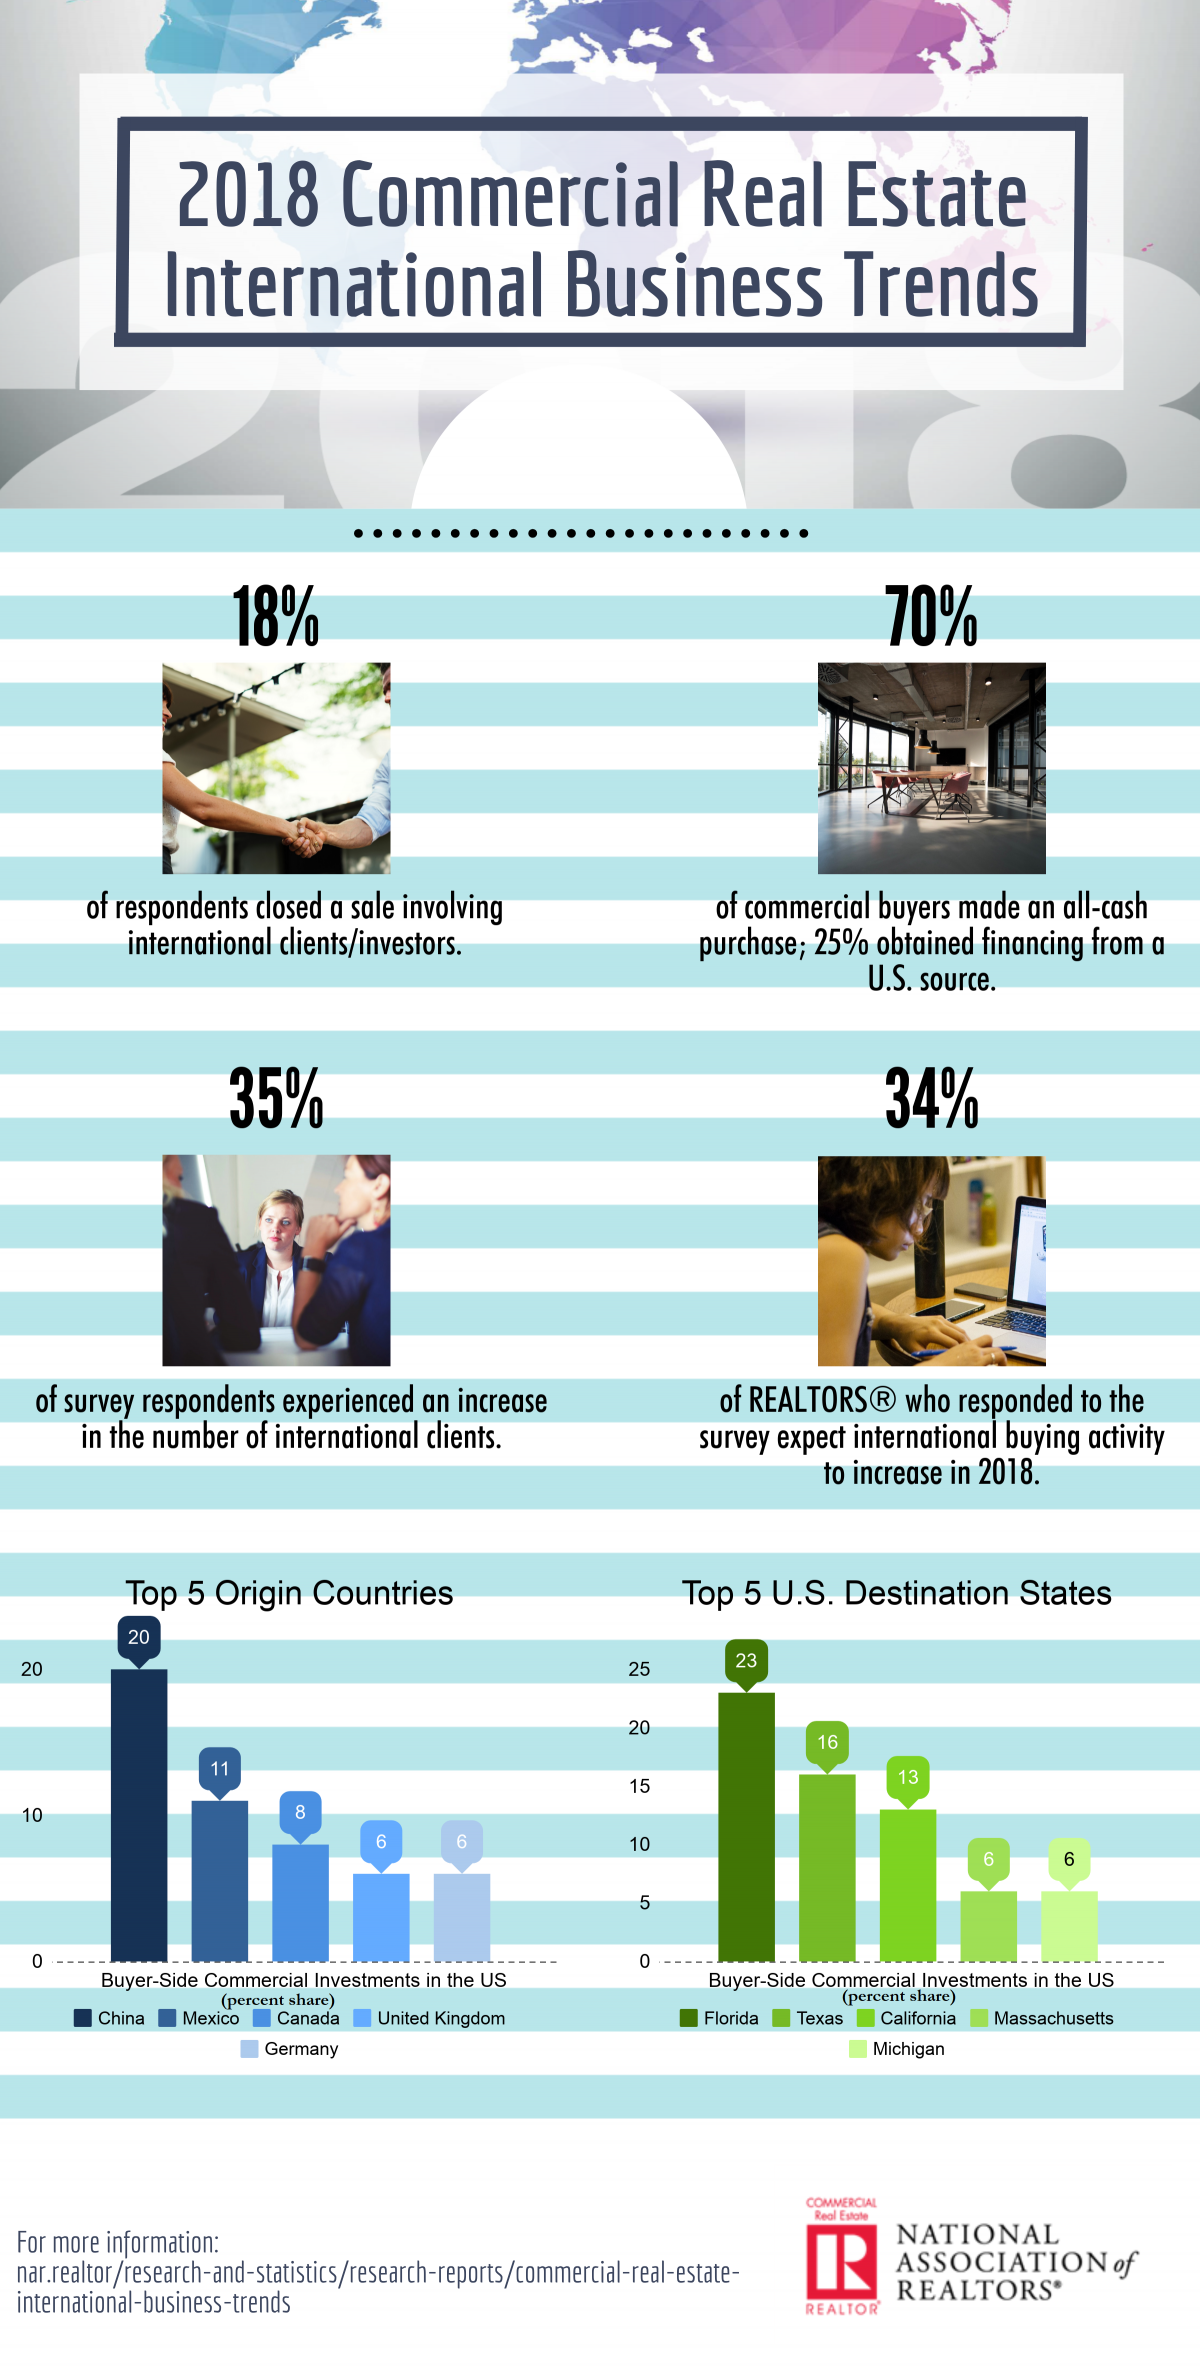 2018 commercial real estate international business trends infographic 06 28 2018 2400w 4743h